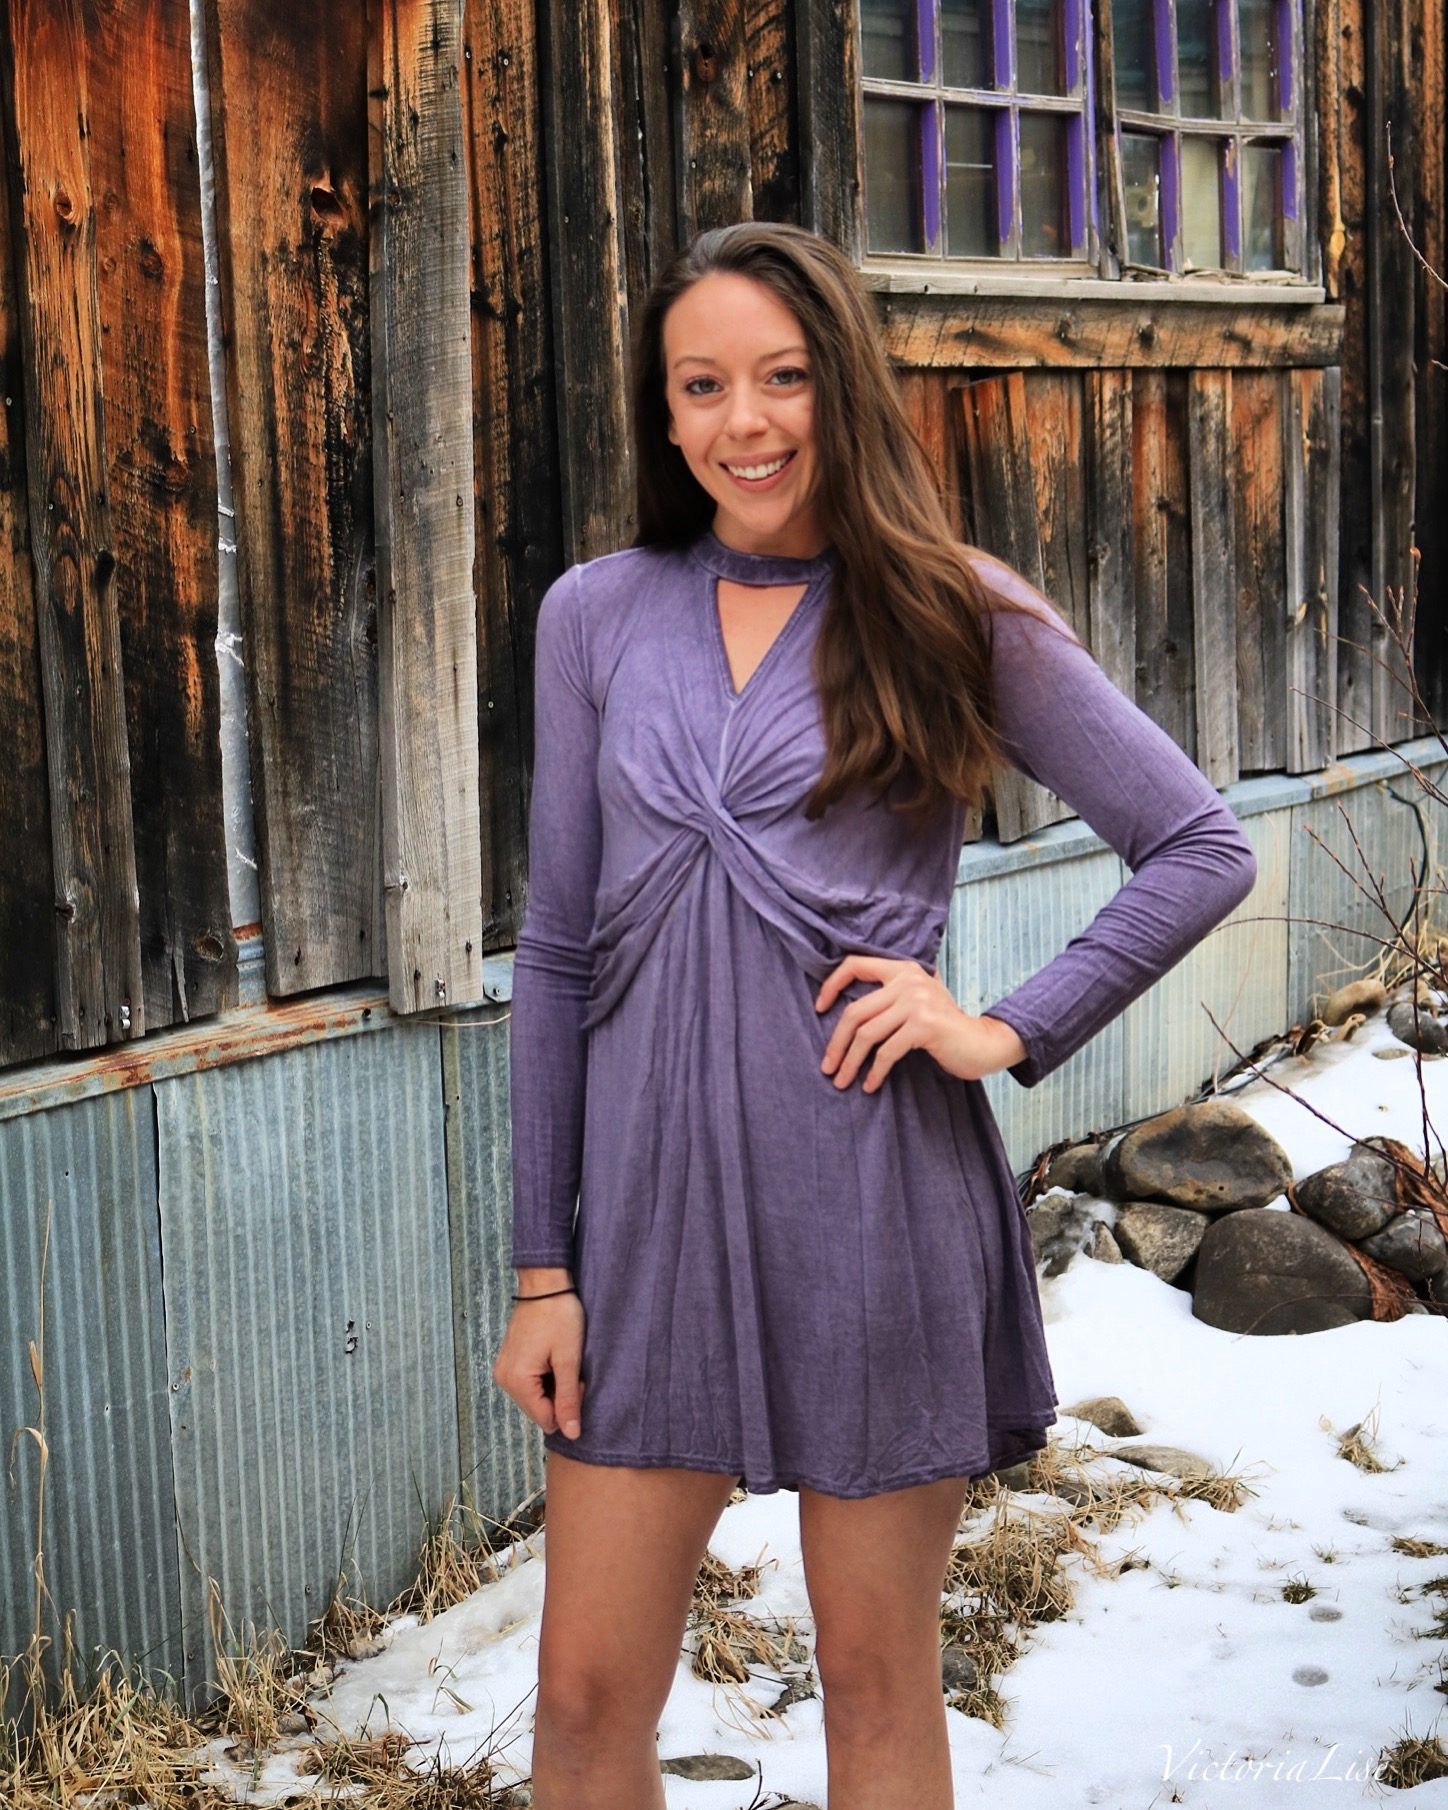 Victoria Lise models purple dress in collaboration with local business.